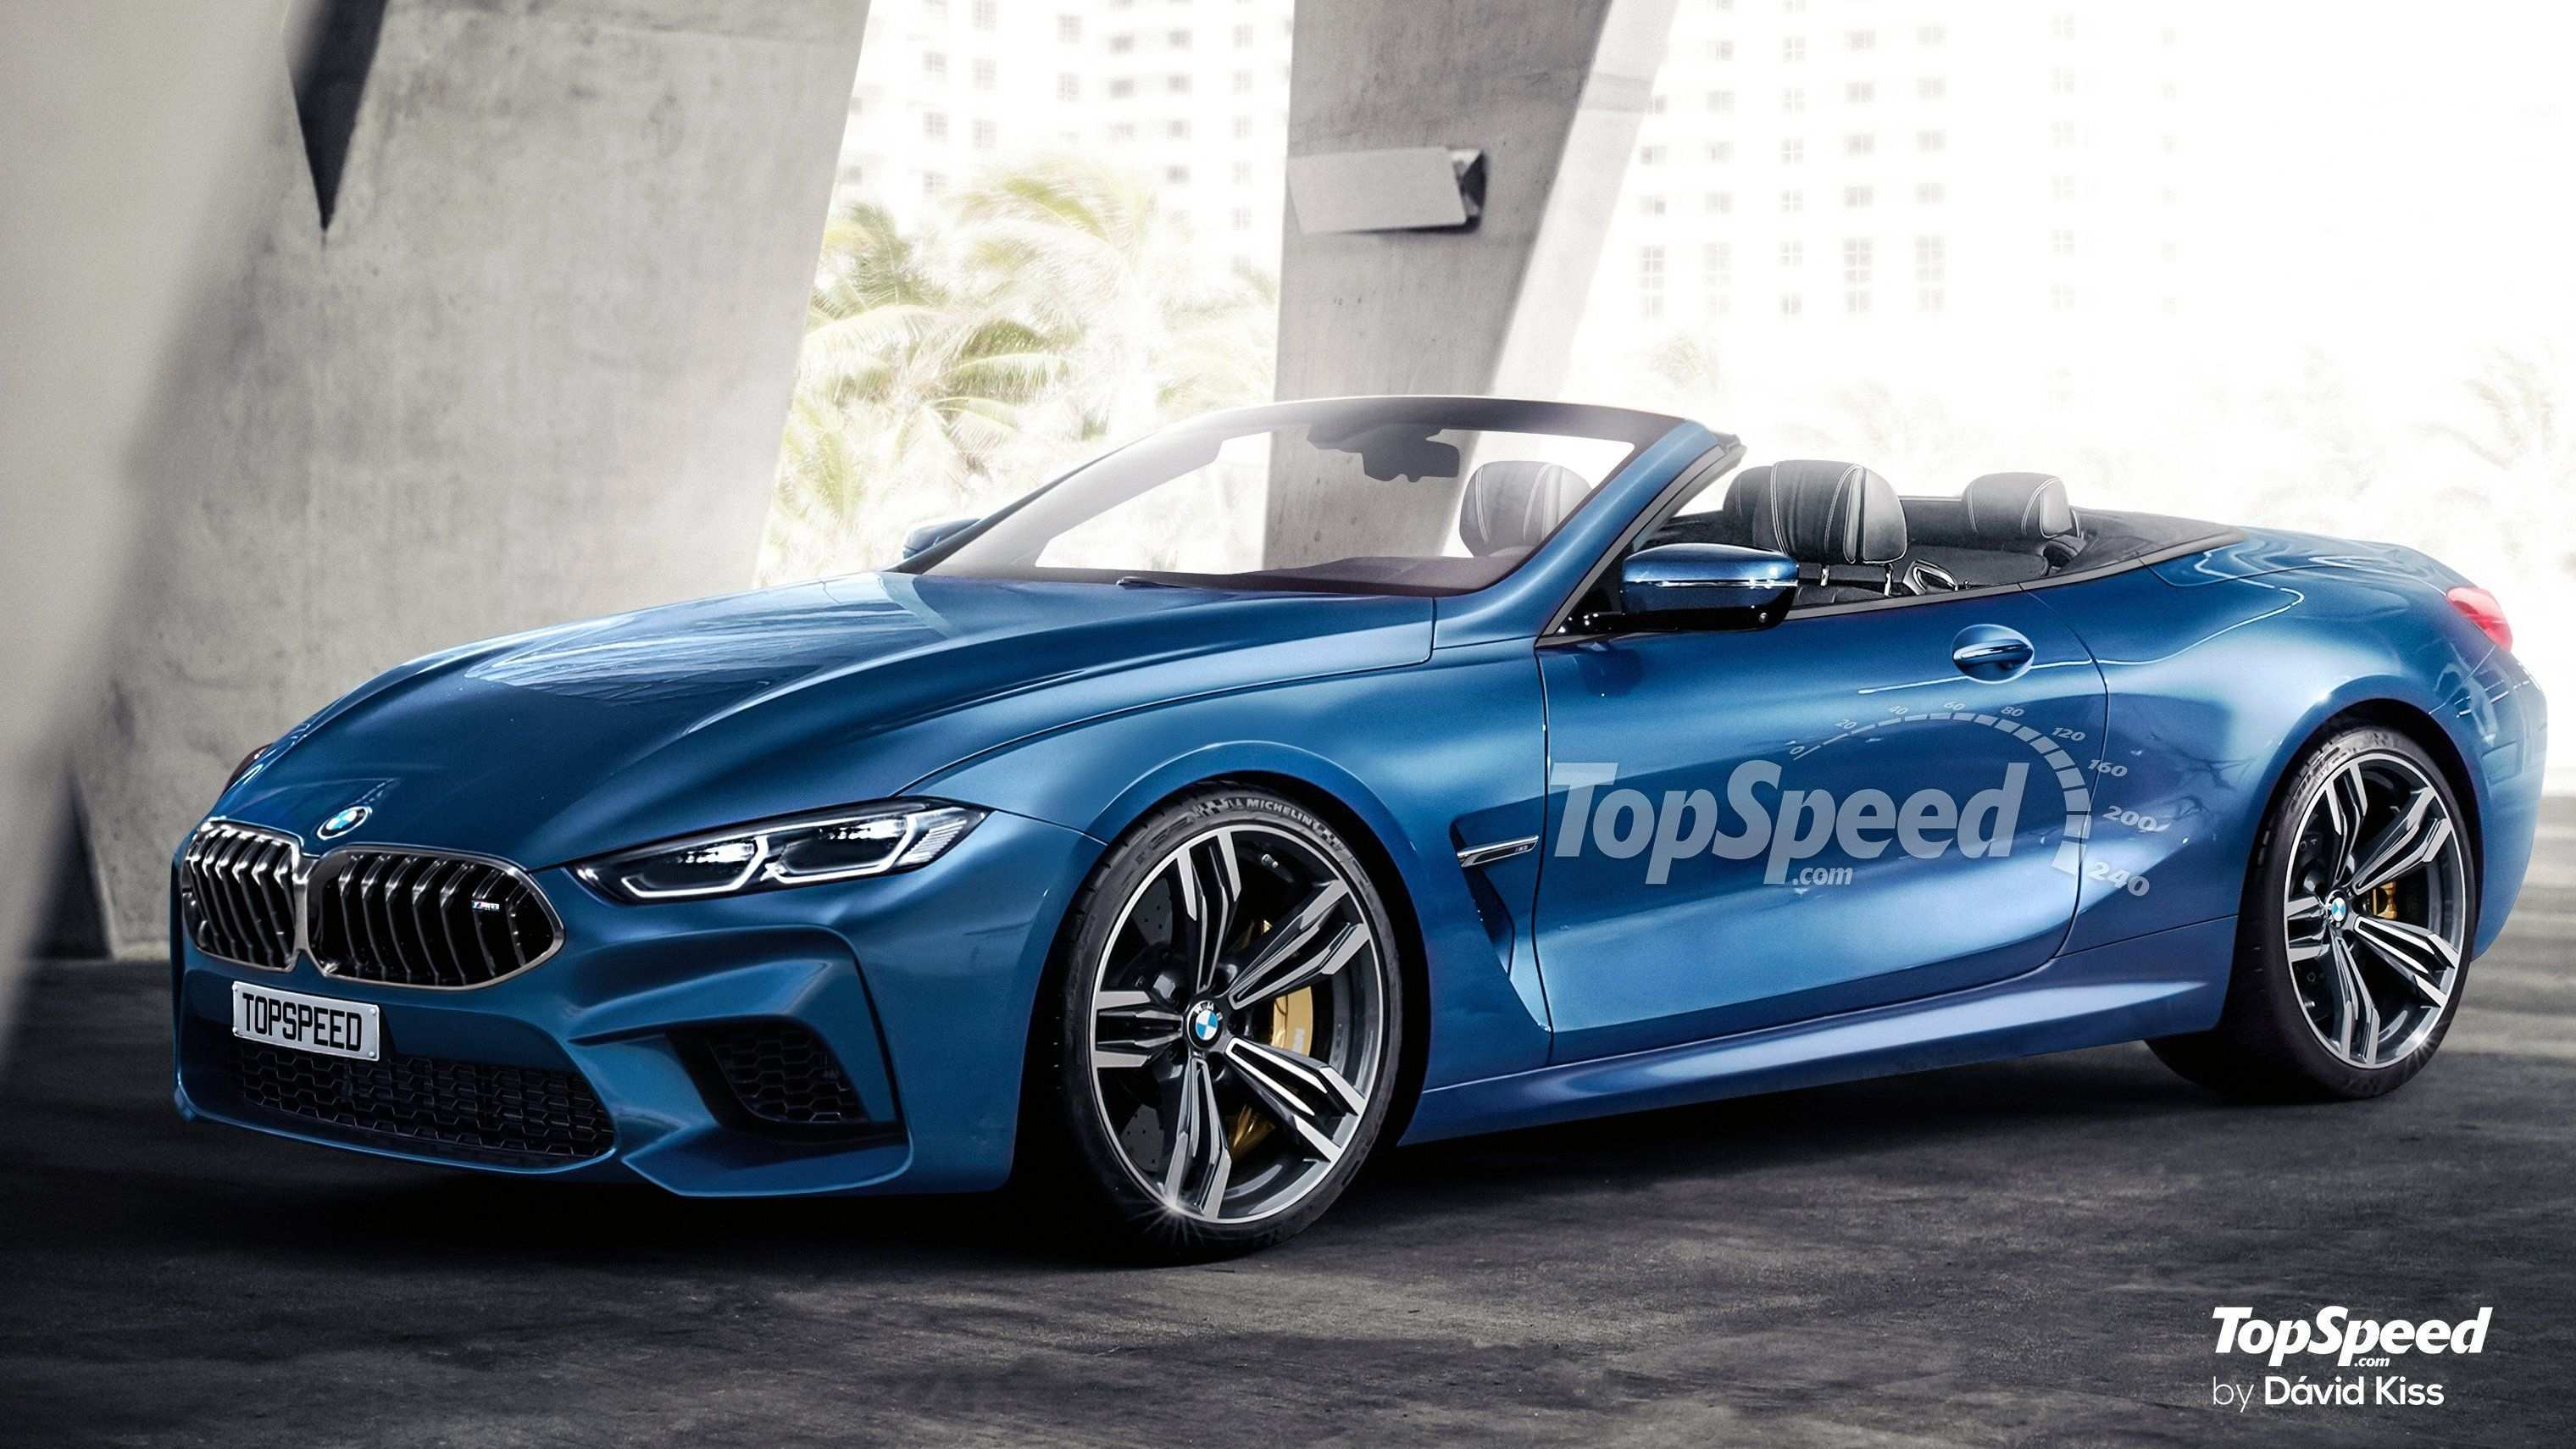 60 Concept of 2020 BMW M9 2020 Performance with 2020 BMW M9 2020